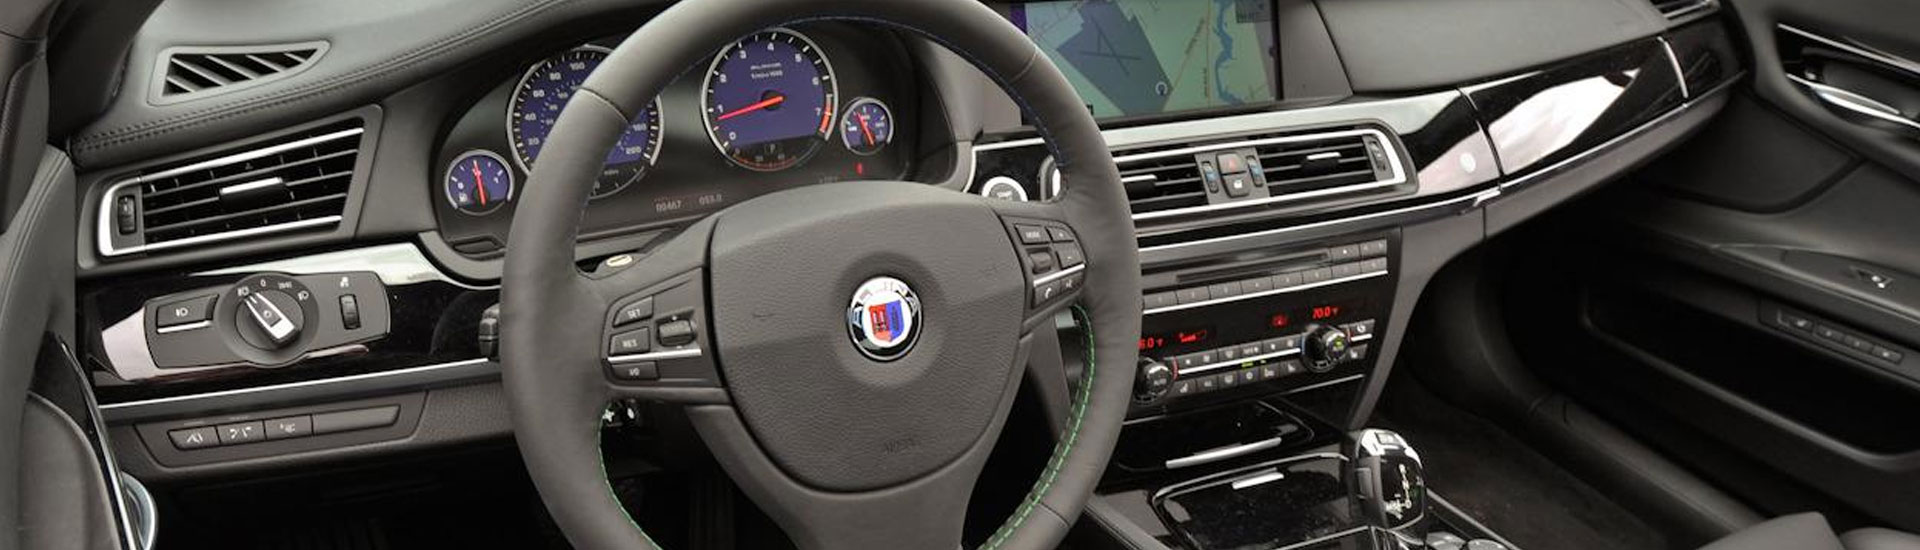 BMW Alpina Custom Dash Kits